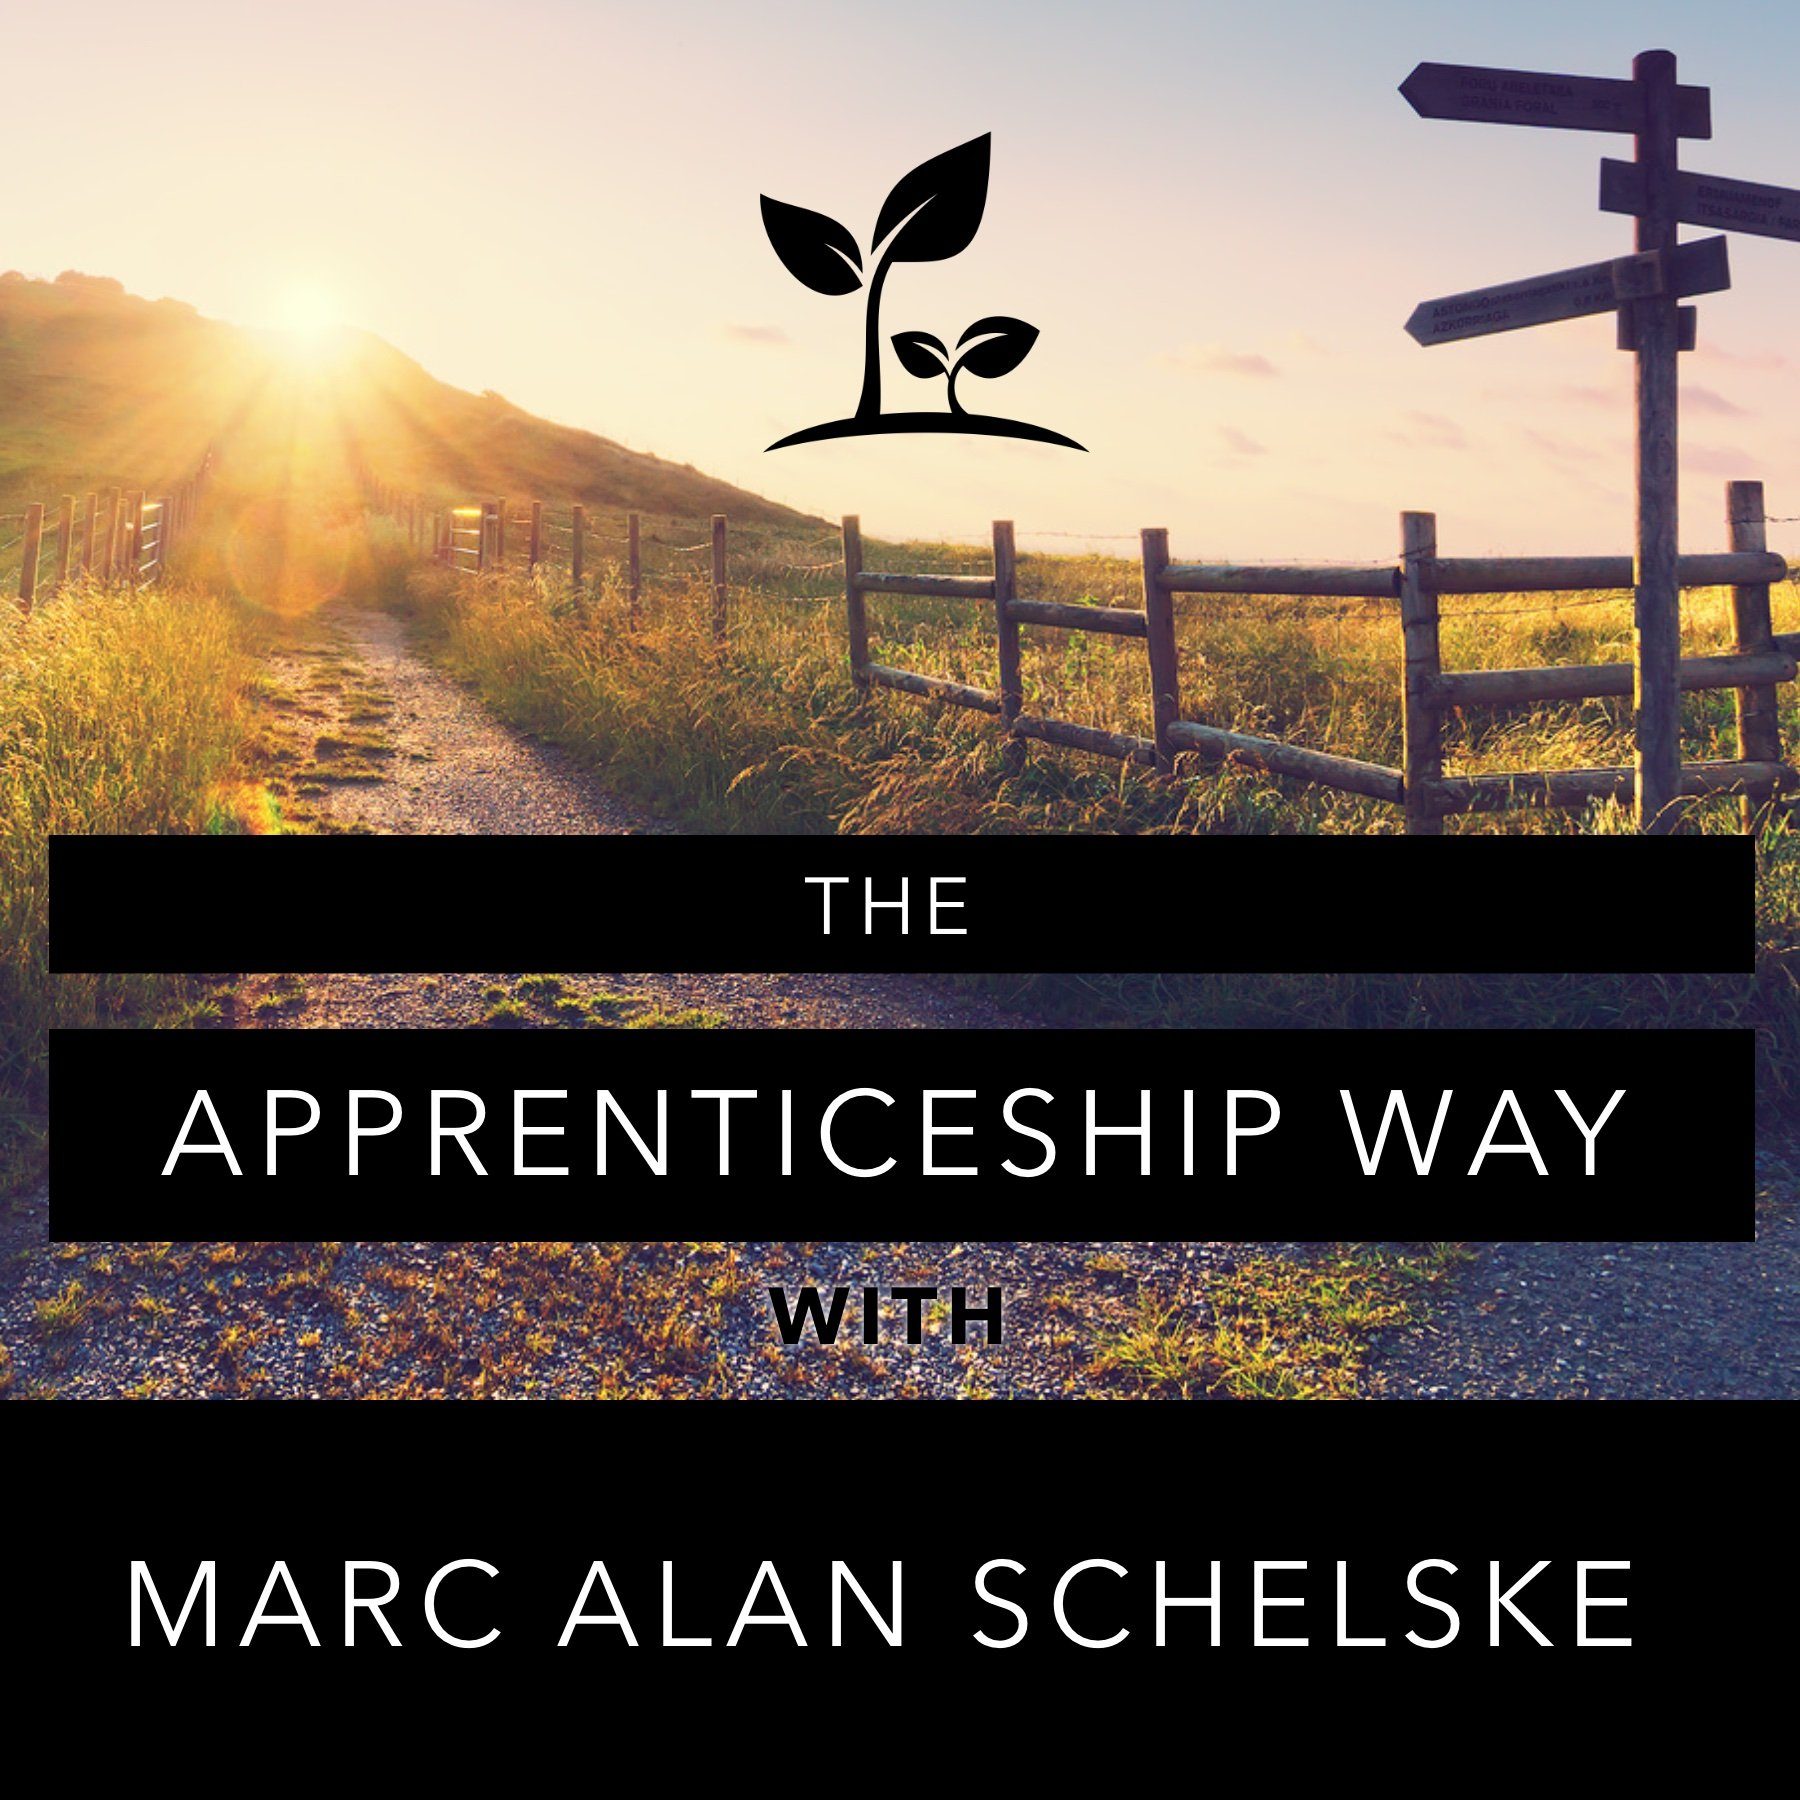 The Apprenticeship Way with Marc Alan Schelske